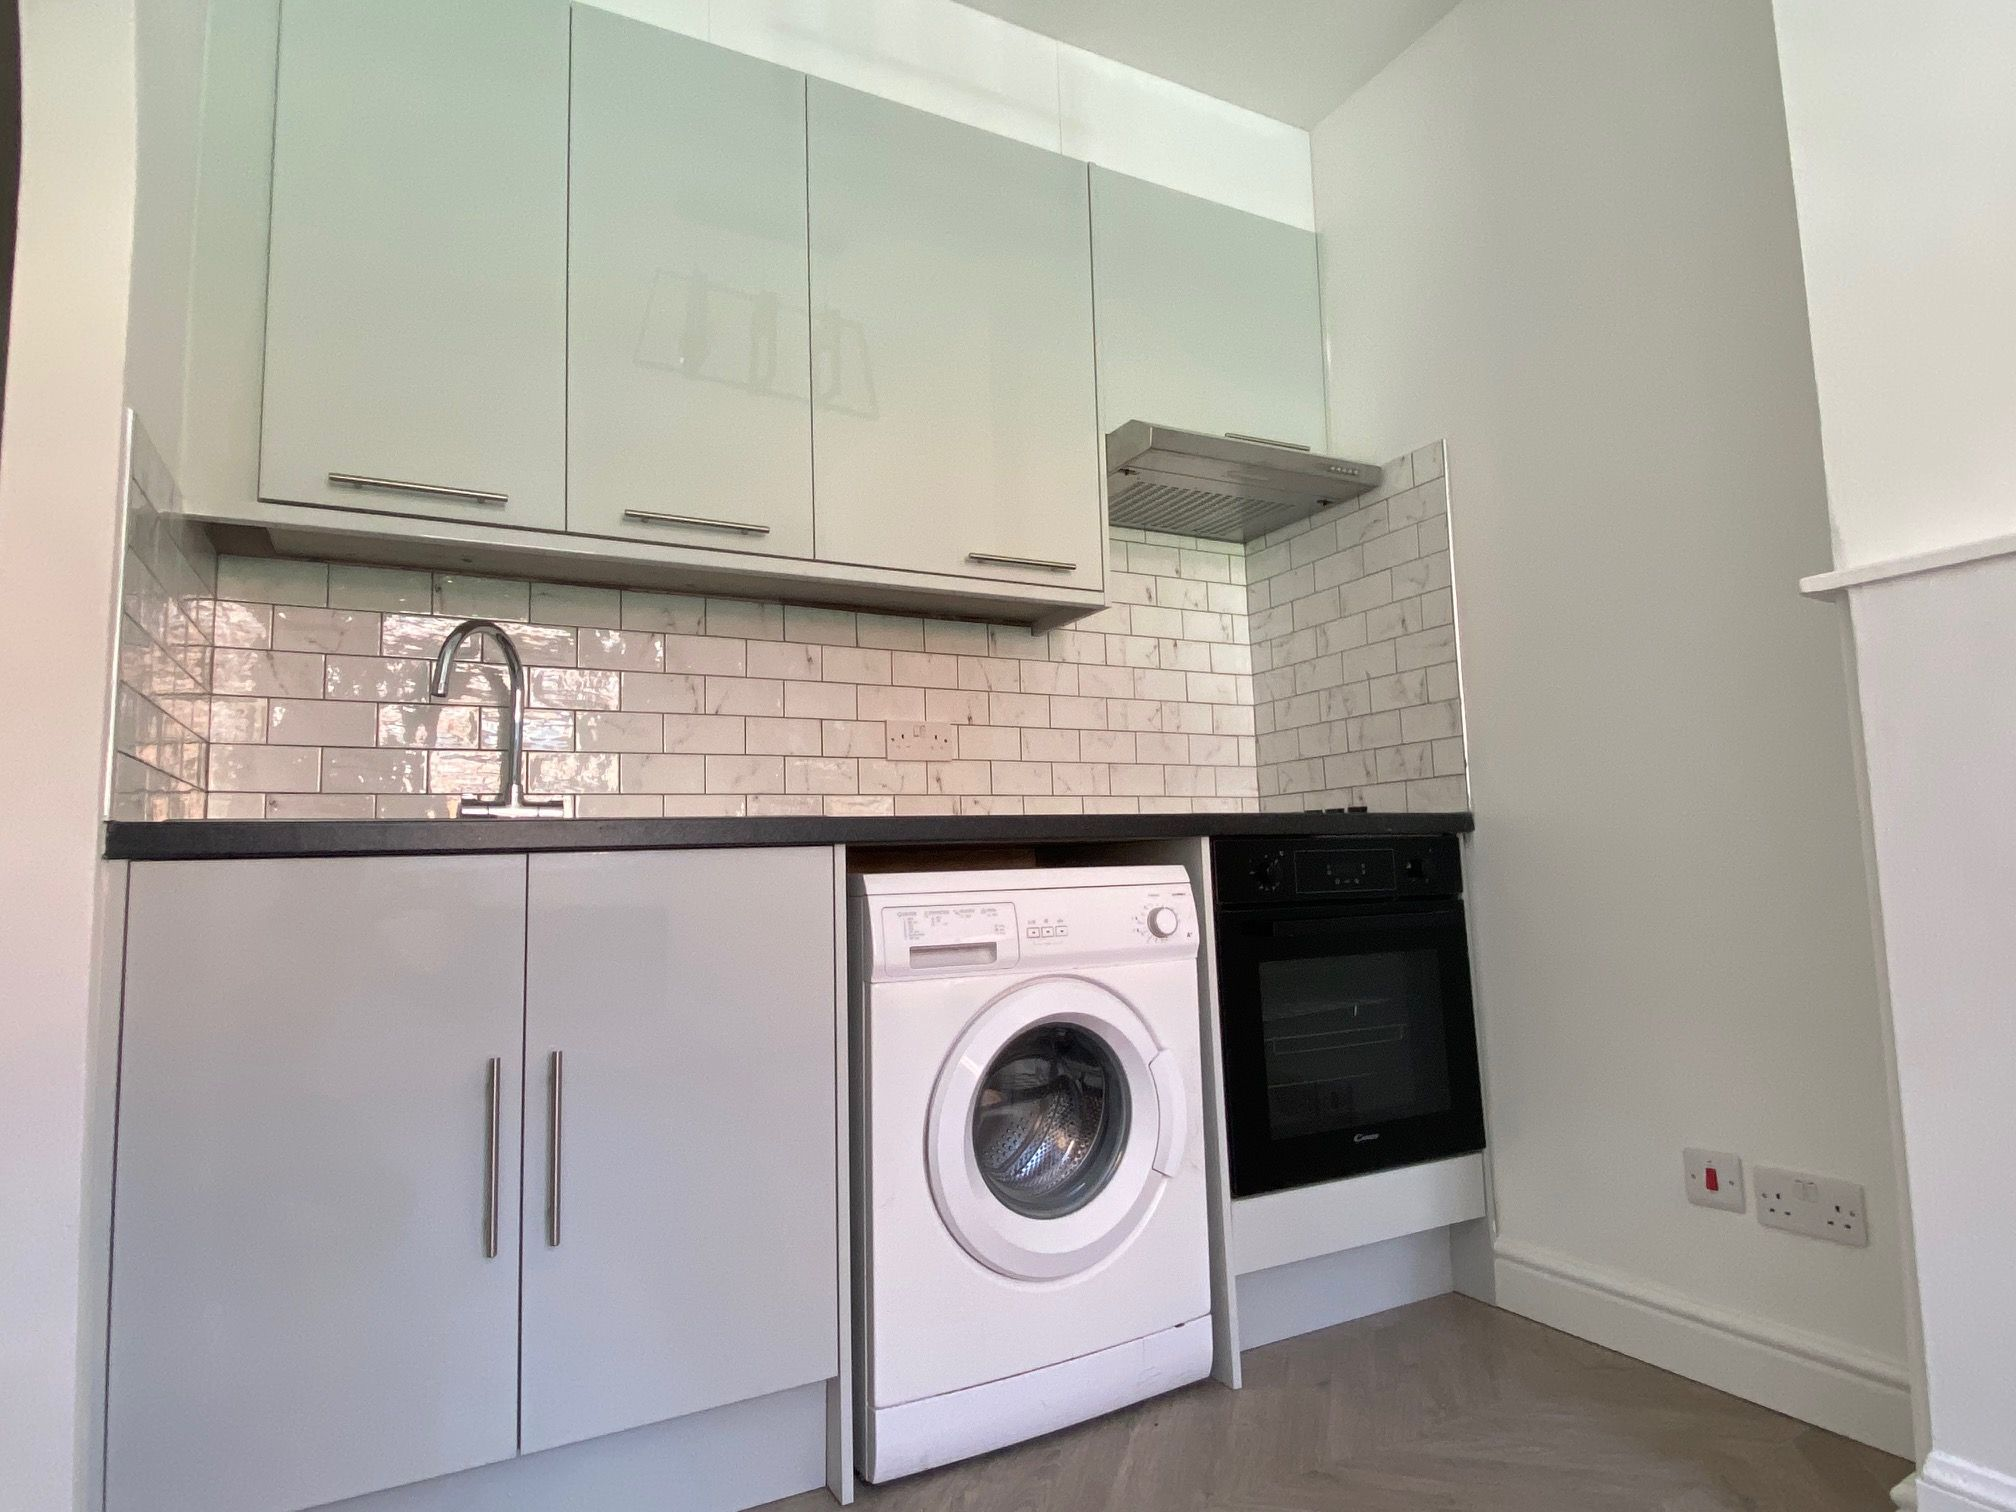 2 bedroom flat flat/apartment Let in Willesden - Brand New Fully Fitted Kitchen